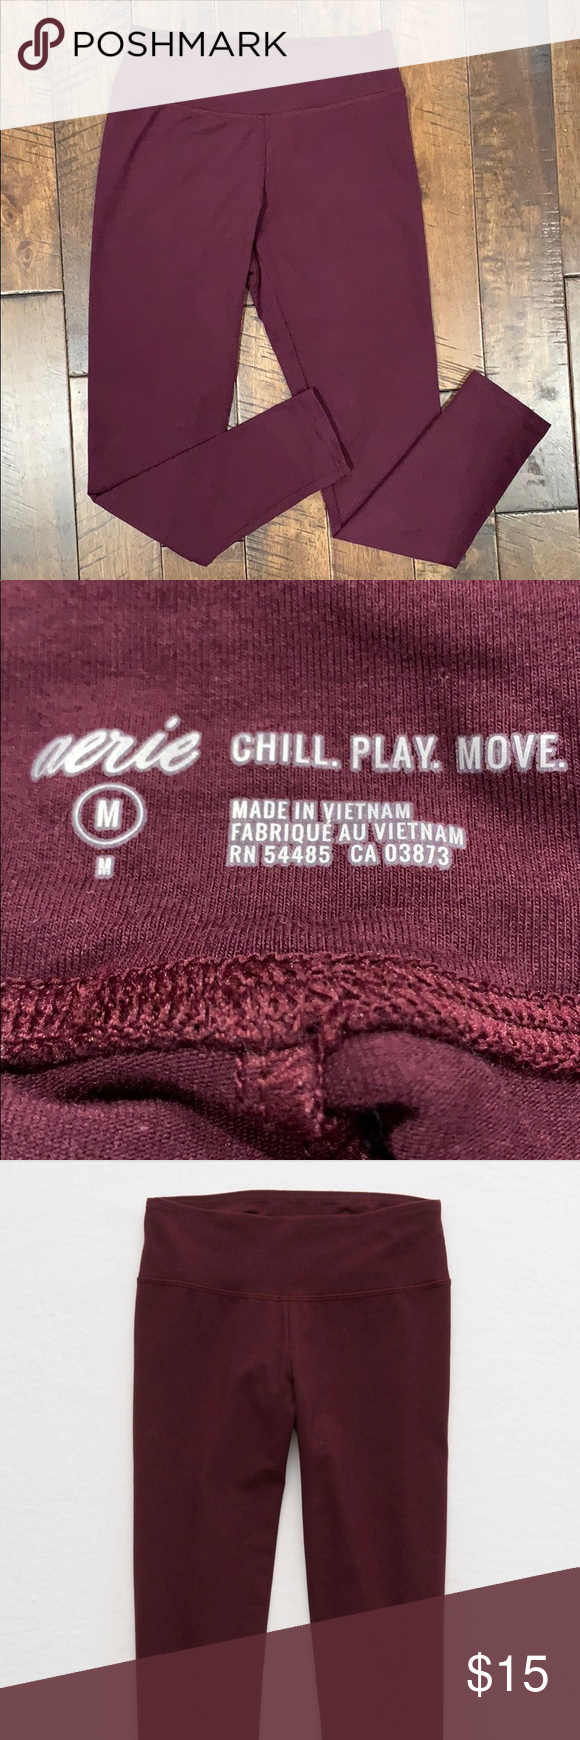 Aerie Leggings Size Medium Aerie Burgandy Chill Play Move Leggings  Size Medium ...